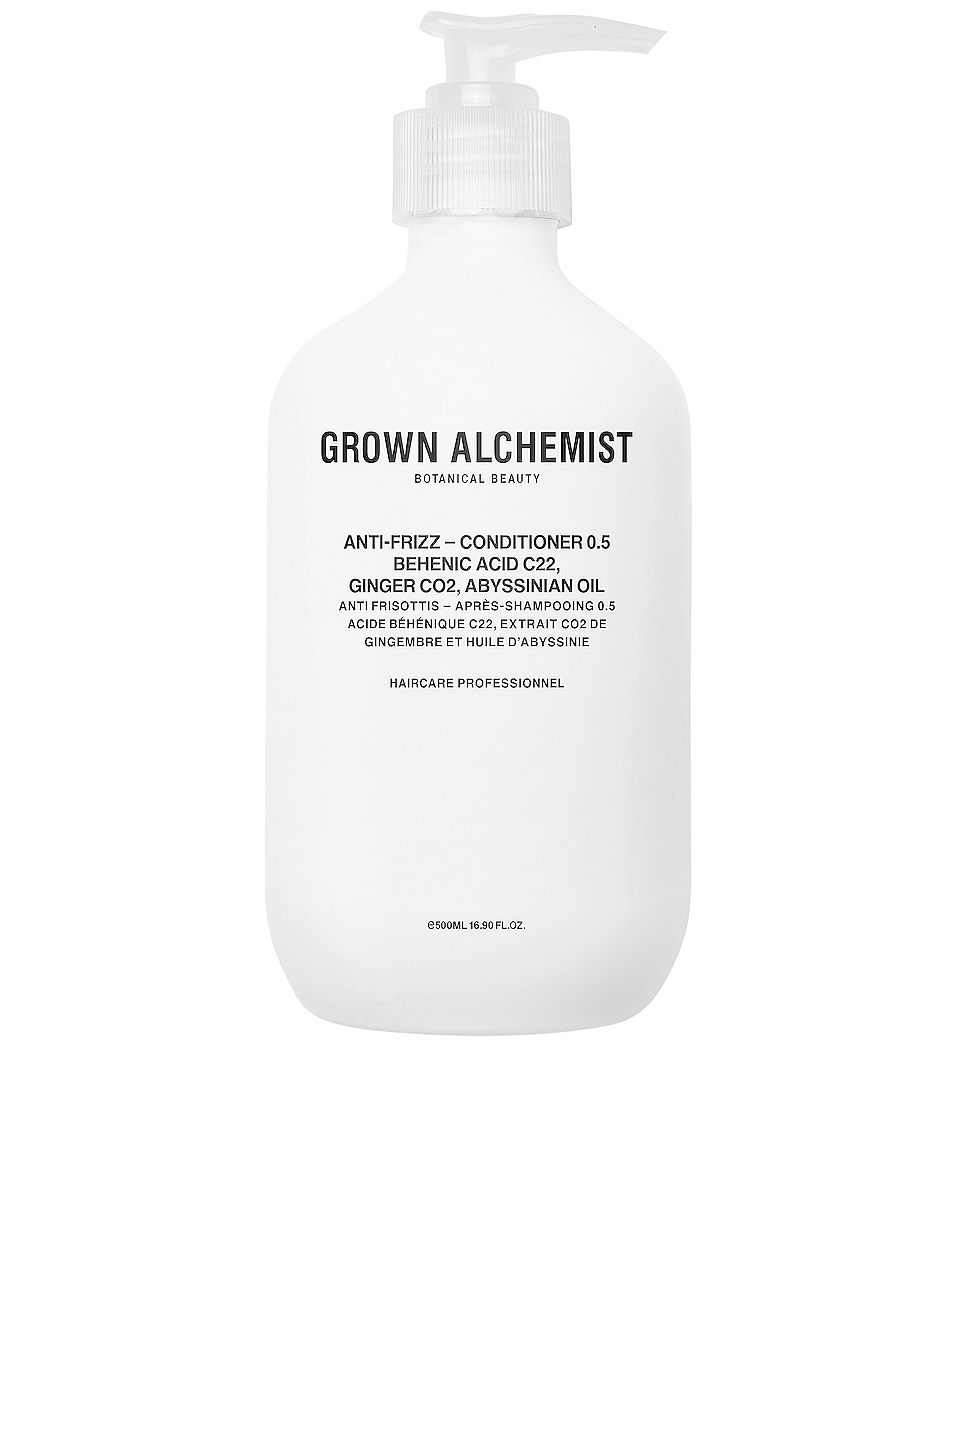 Grown Alchemist Anti-Frizz Conditioner 0.5 in Behenic Acid C22 & Ginger CO2 & Abyssinian Oil